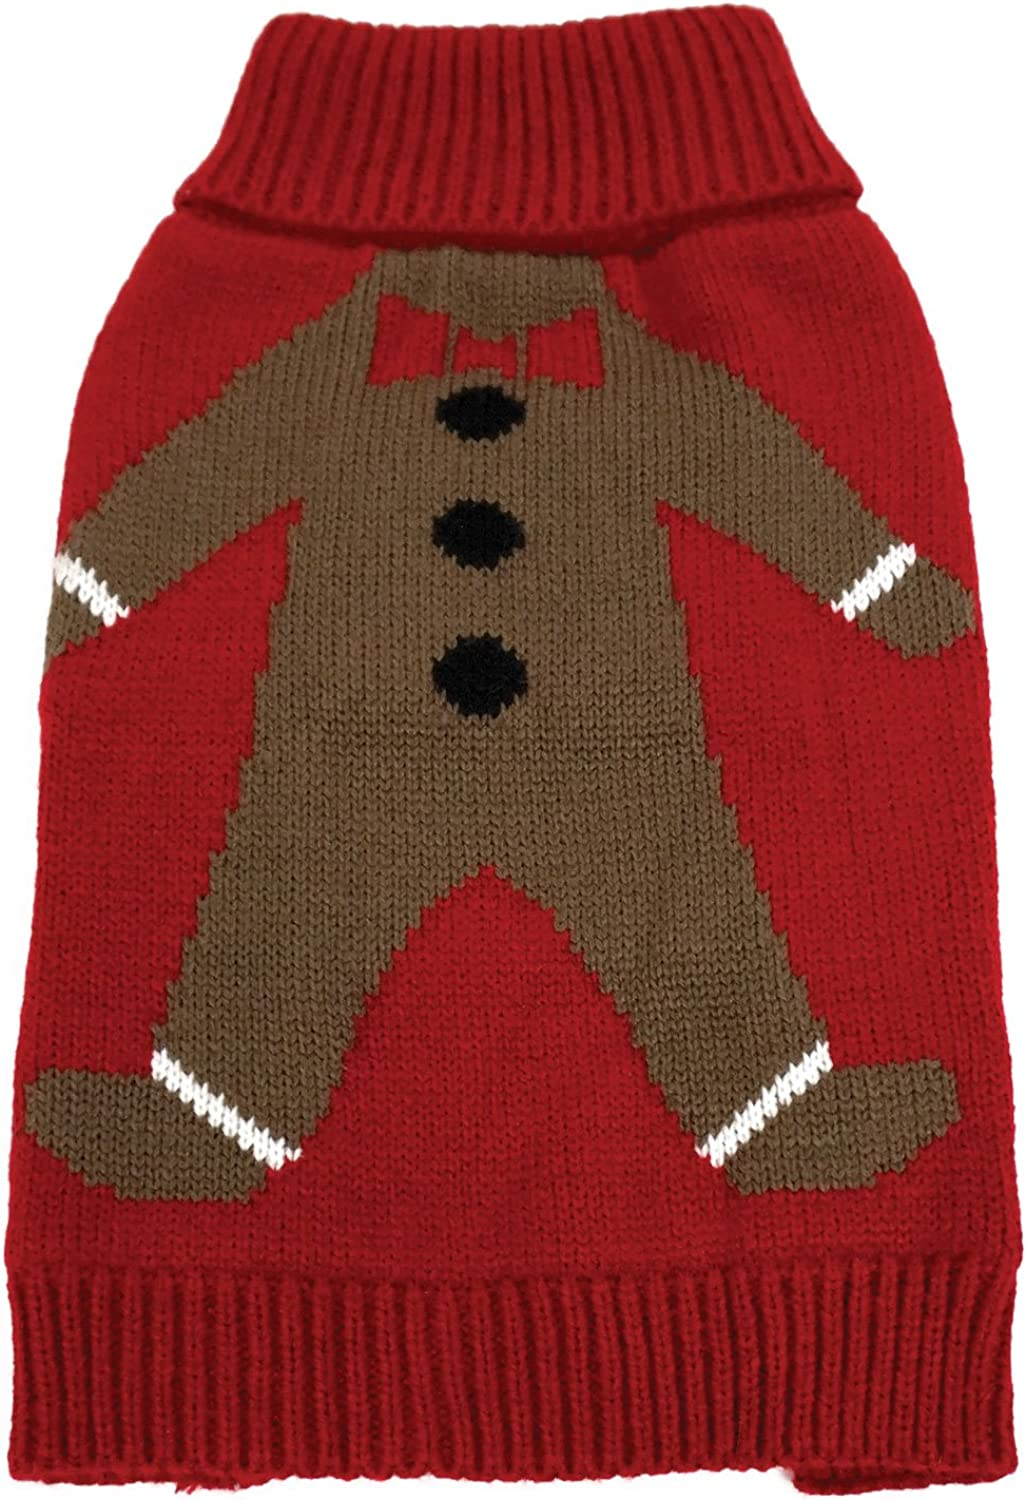 FouFou Dog 62601 Gingie Ugly Christmas Sweater for Dogs, 2XLarge